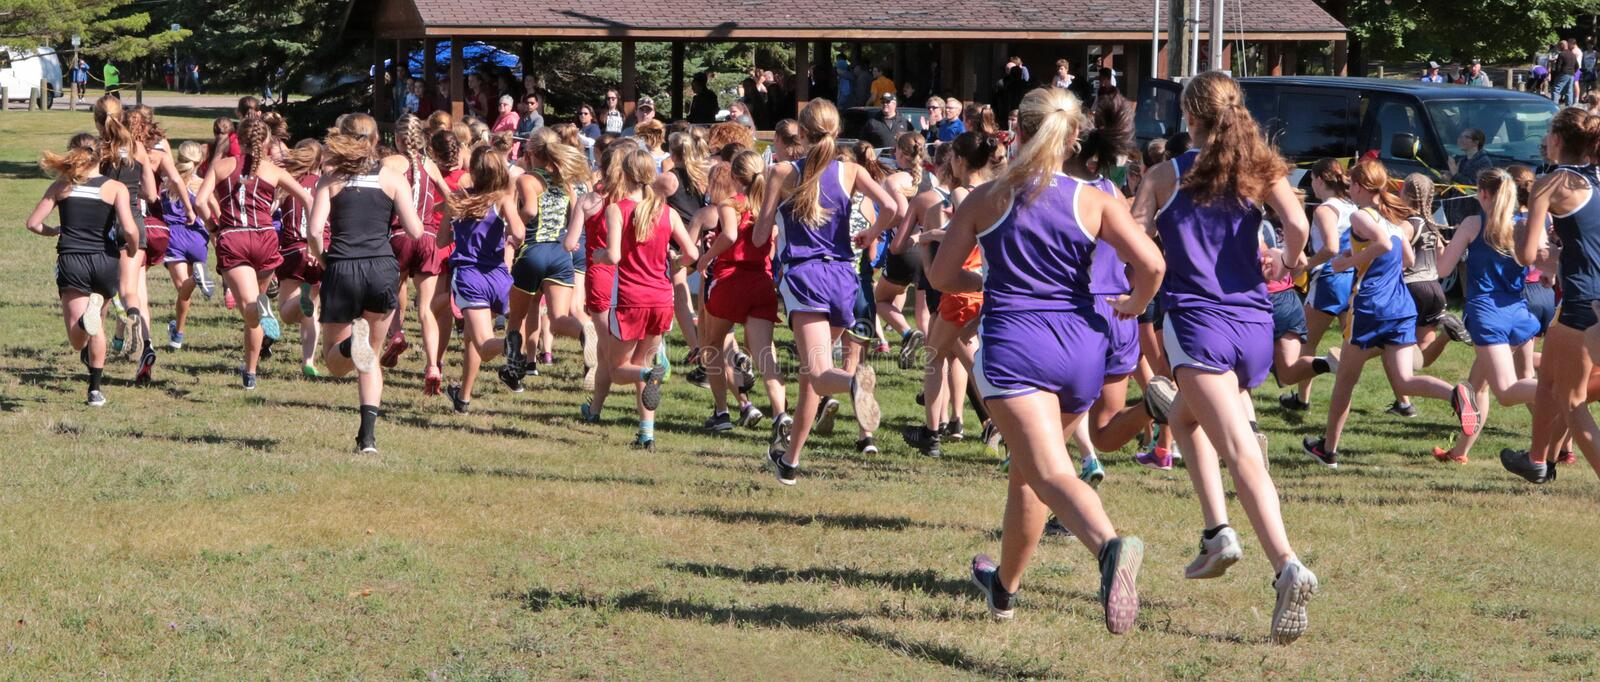 GIRLS High School Cross Country Race. At Marquette, Michigan, USA royalty free stock image